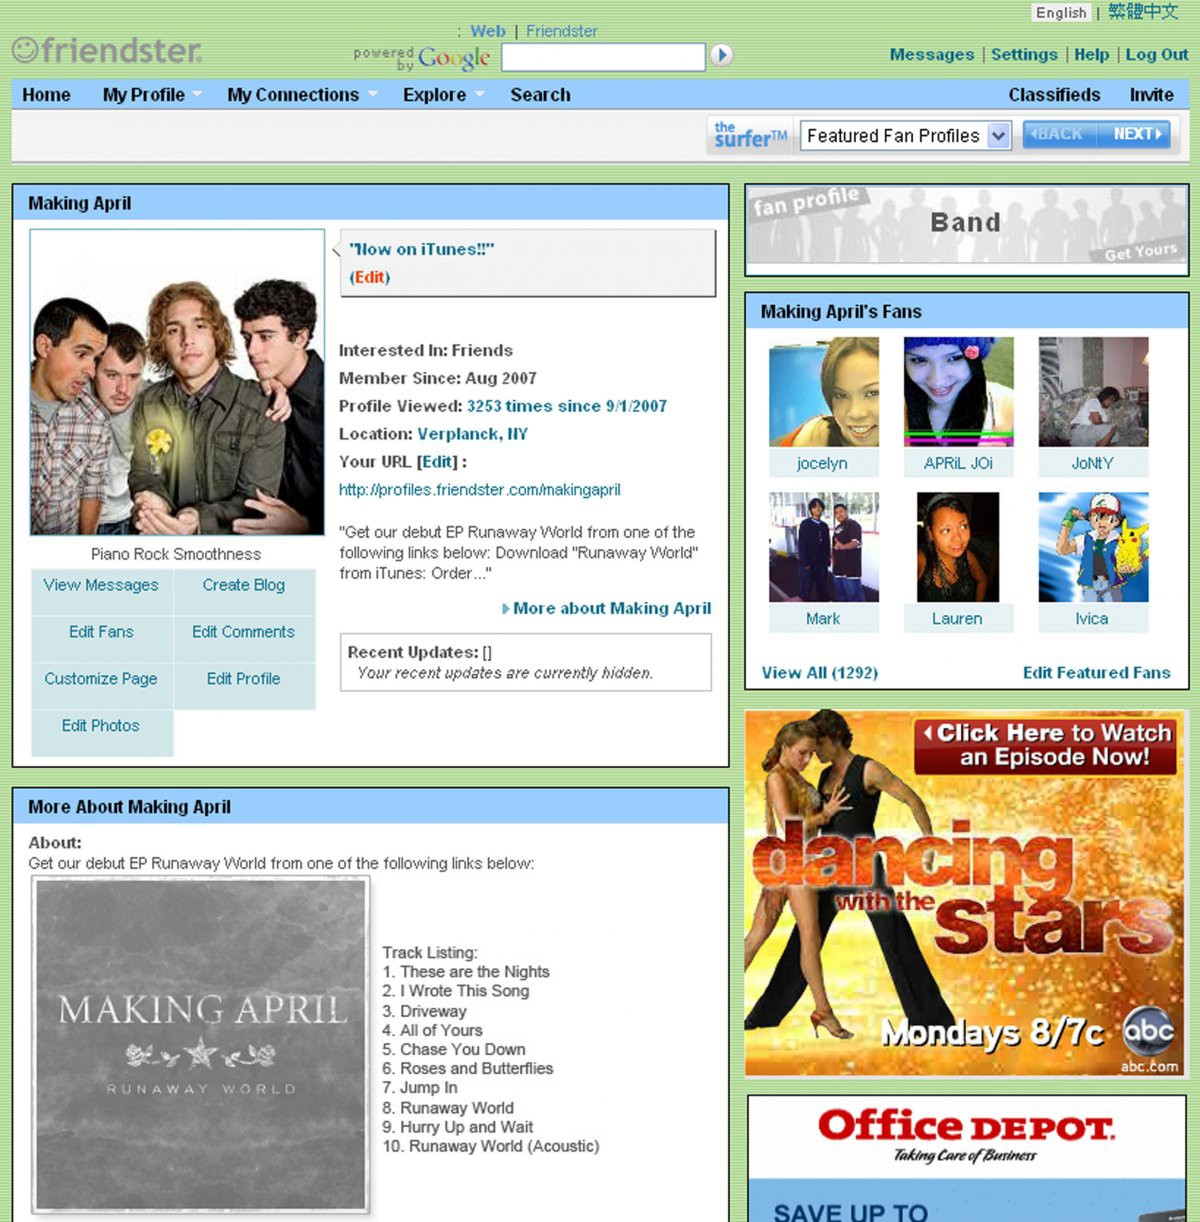 how friendster became a powerful and popular tool for social networking They had a great idea, though, and it finally became popular in the last few years first (real) stop: friendster in 2001, i took the plunge into friendster , and as an early adopter, i befriended just about anyone i had some sort of association with and reciprocated every friend request.